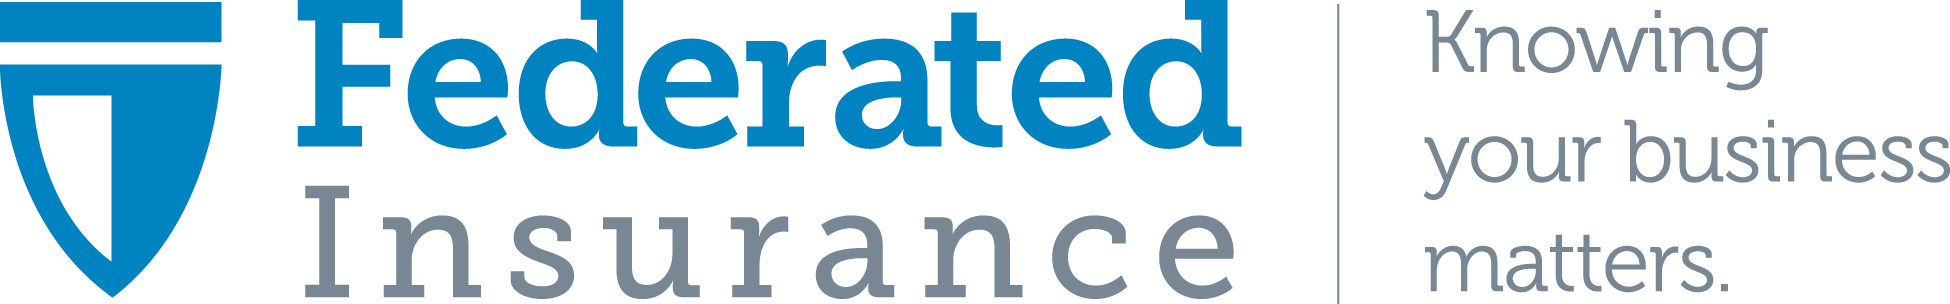 Federated-Insurance-Logo-3.jpg